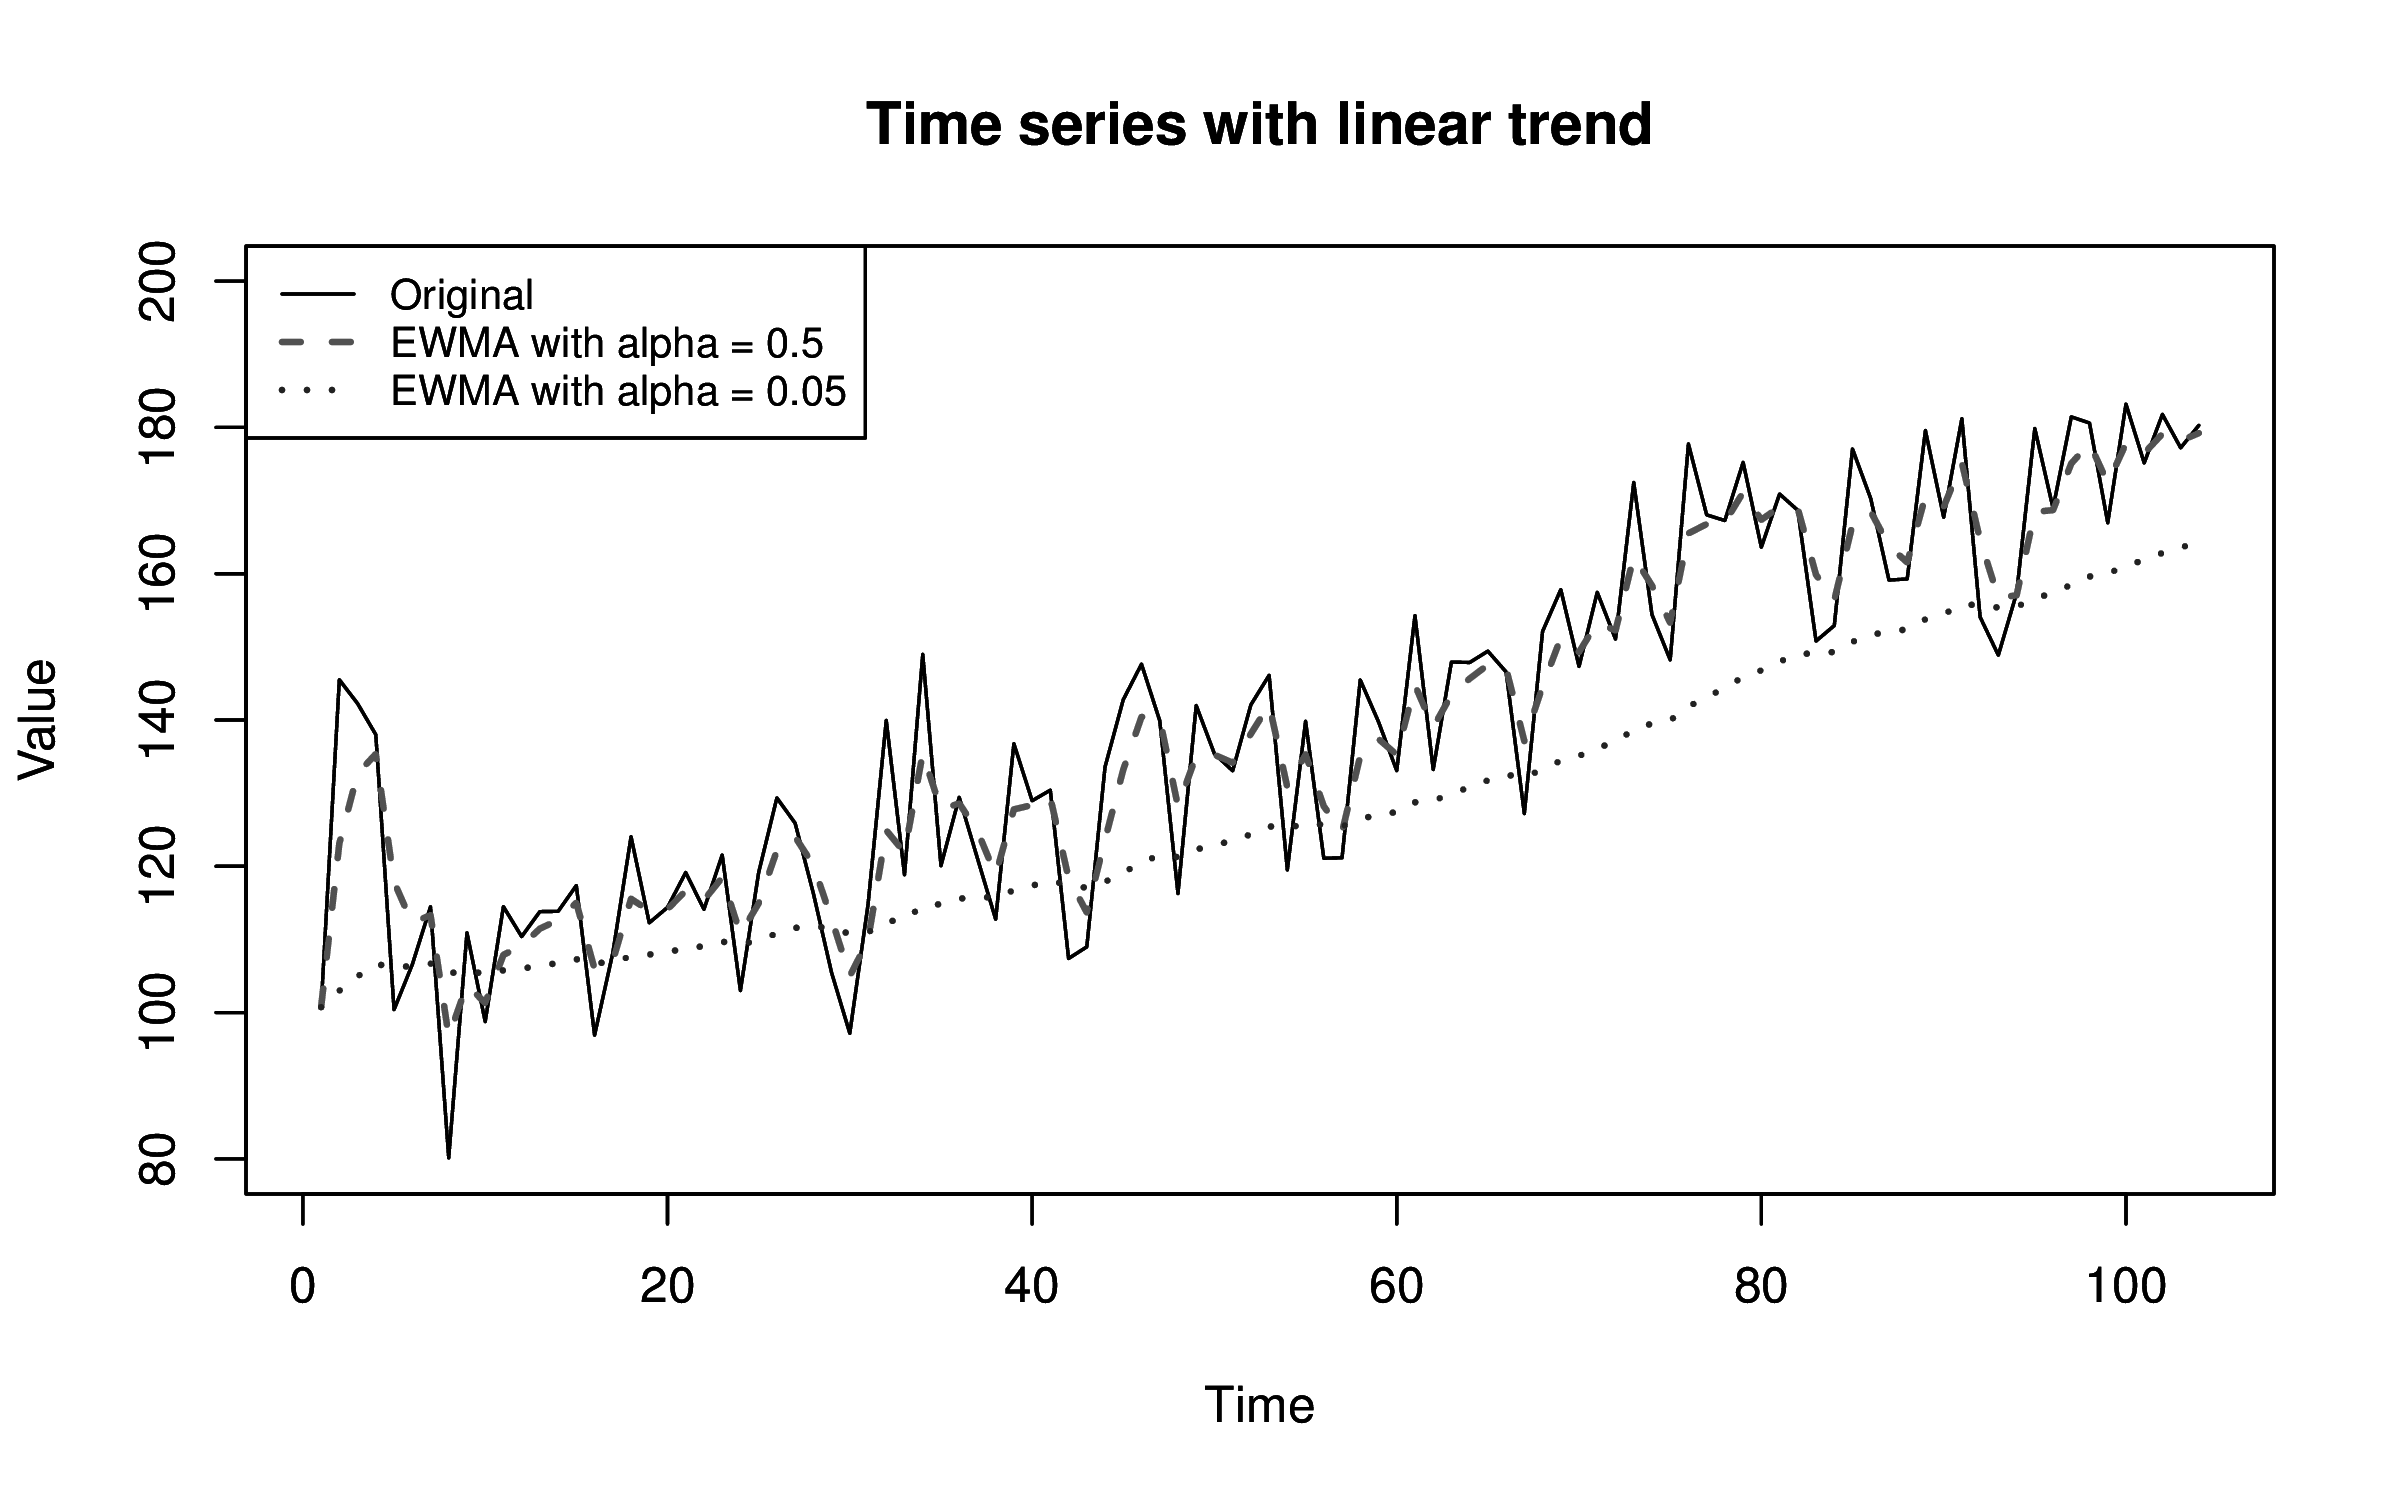 plots/output/exponential_smoothing/trend_time_series.png